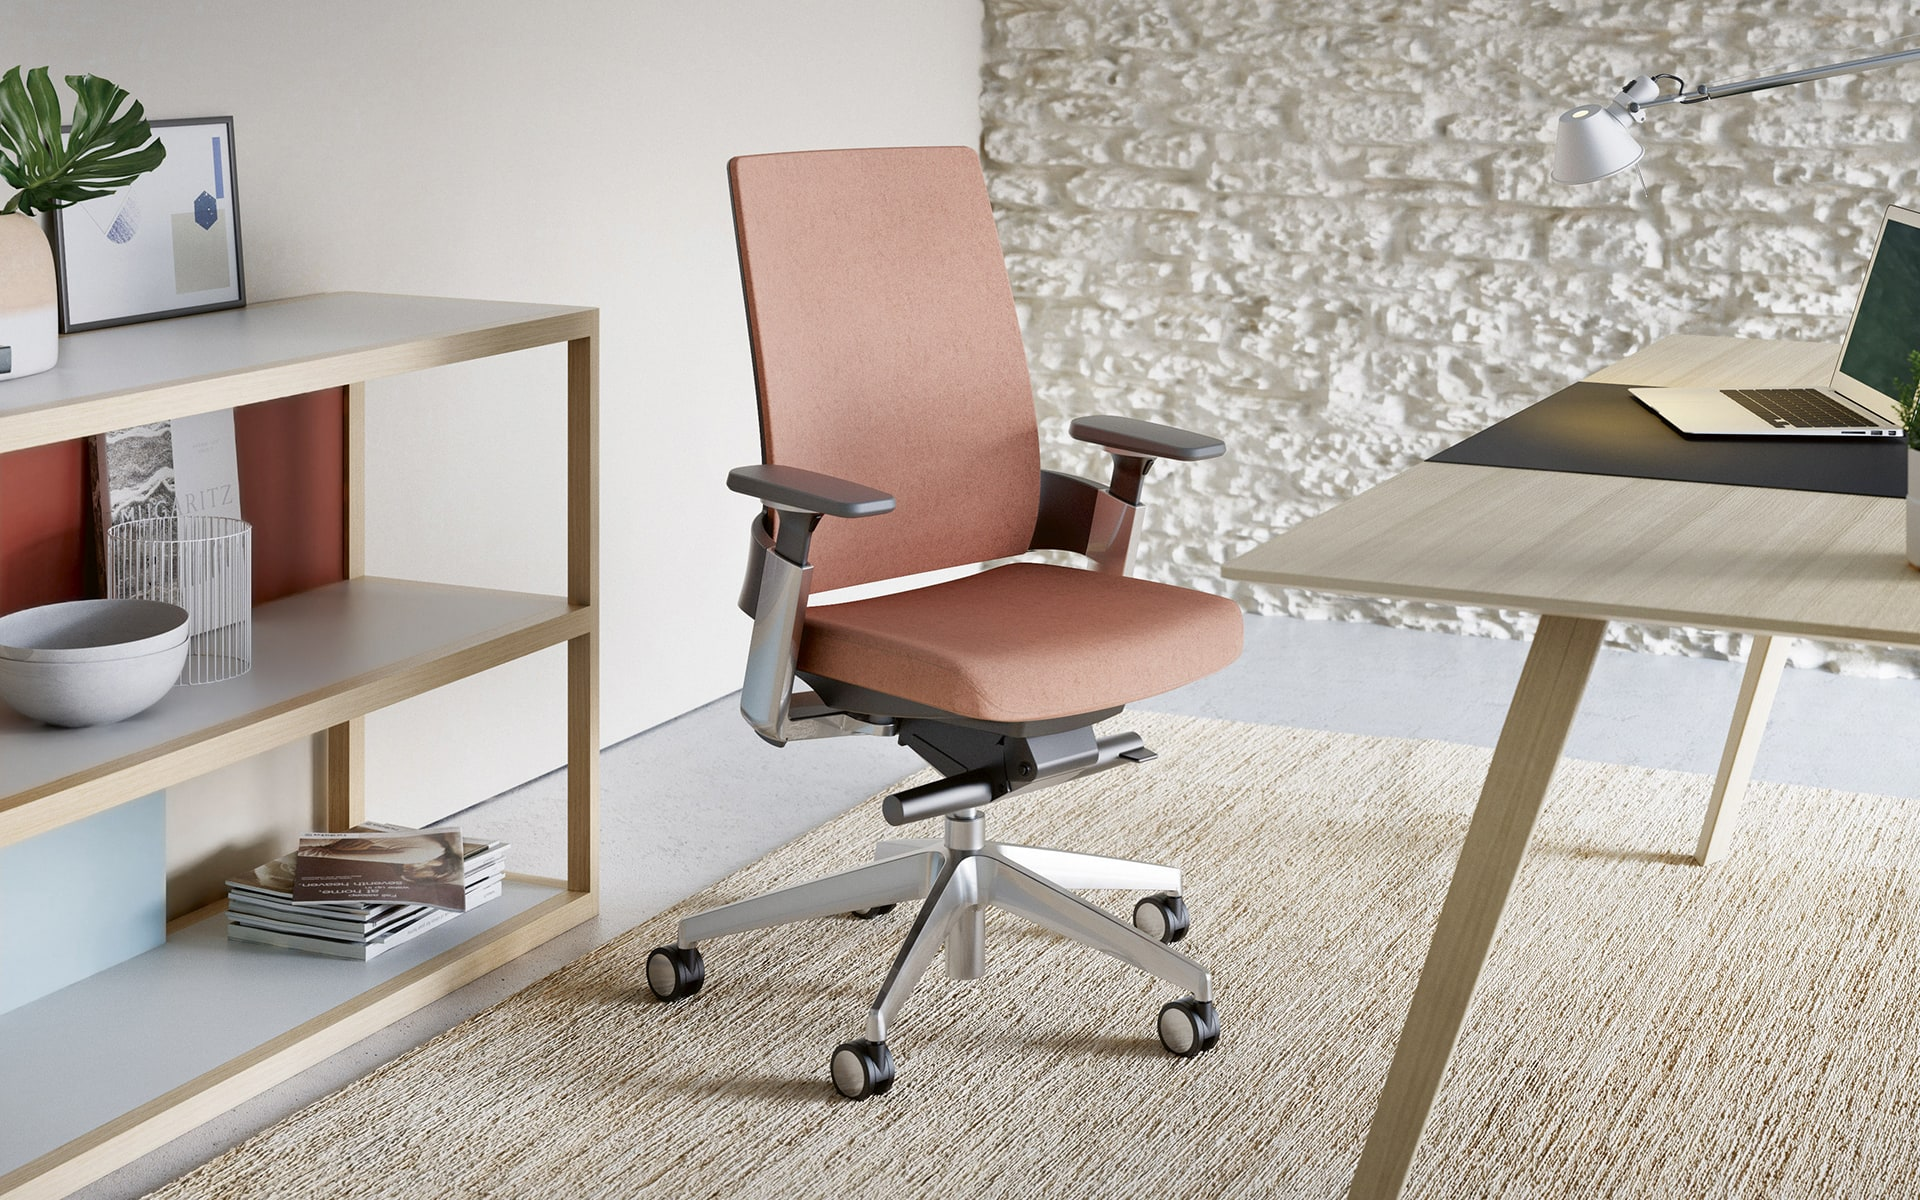 Forma 5 3.60 office chair by ITO Design with orange upholstery in stylish office